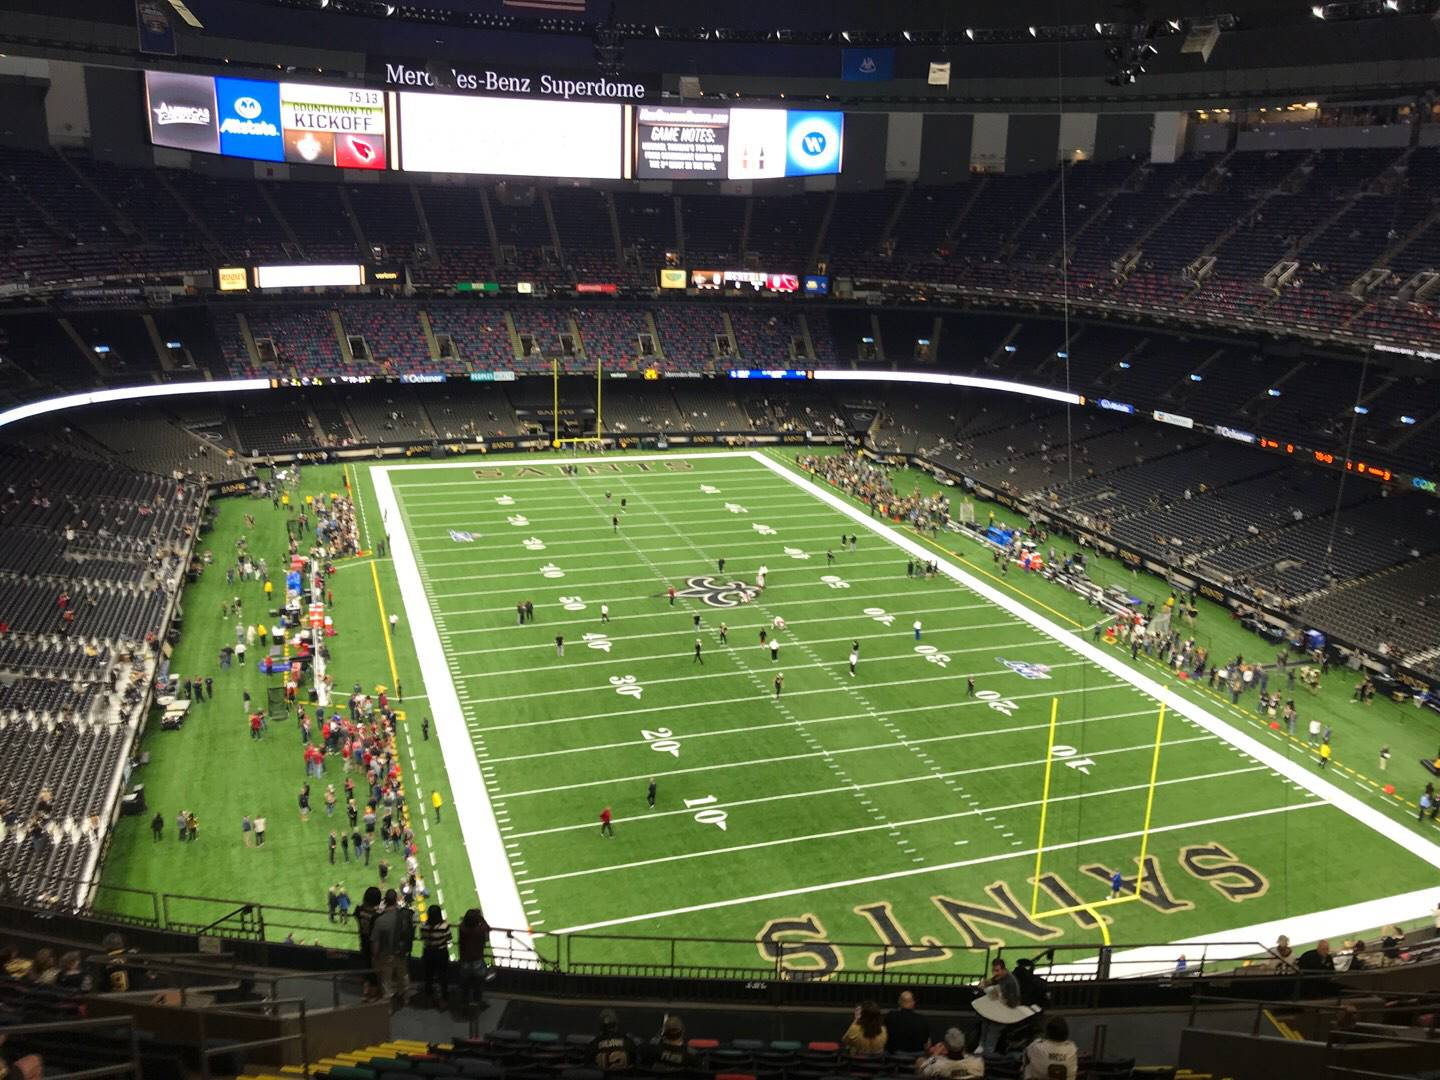 Mercedes-Benz Superdome Section 604 Row 19 Seat 14